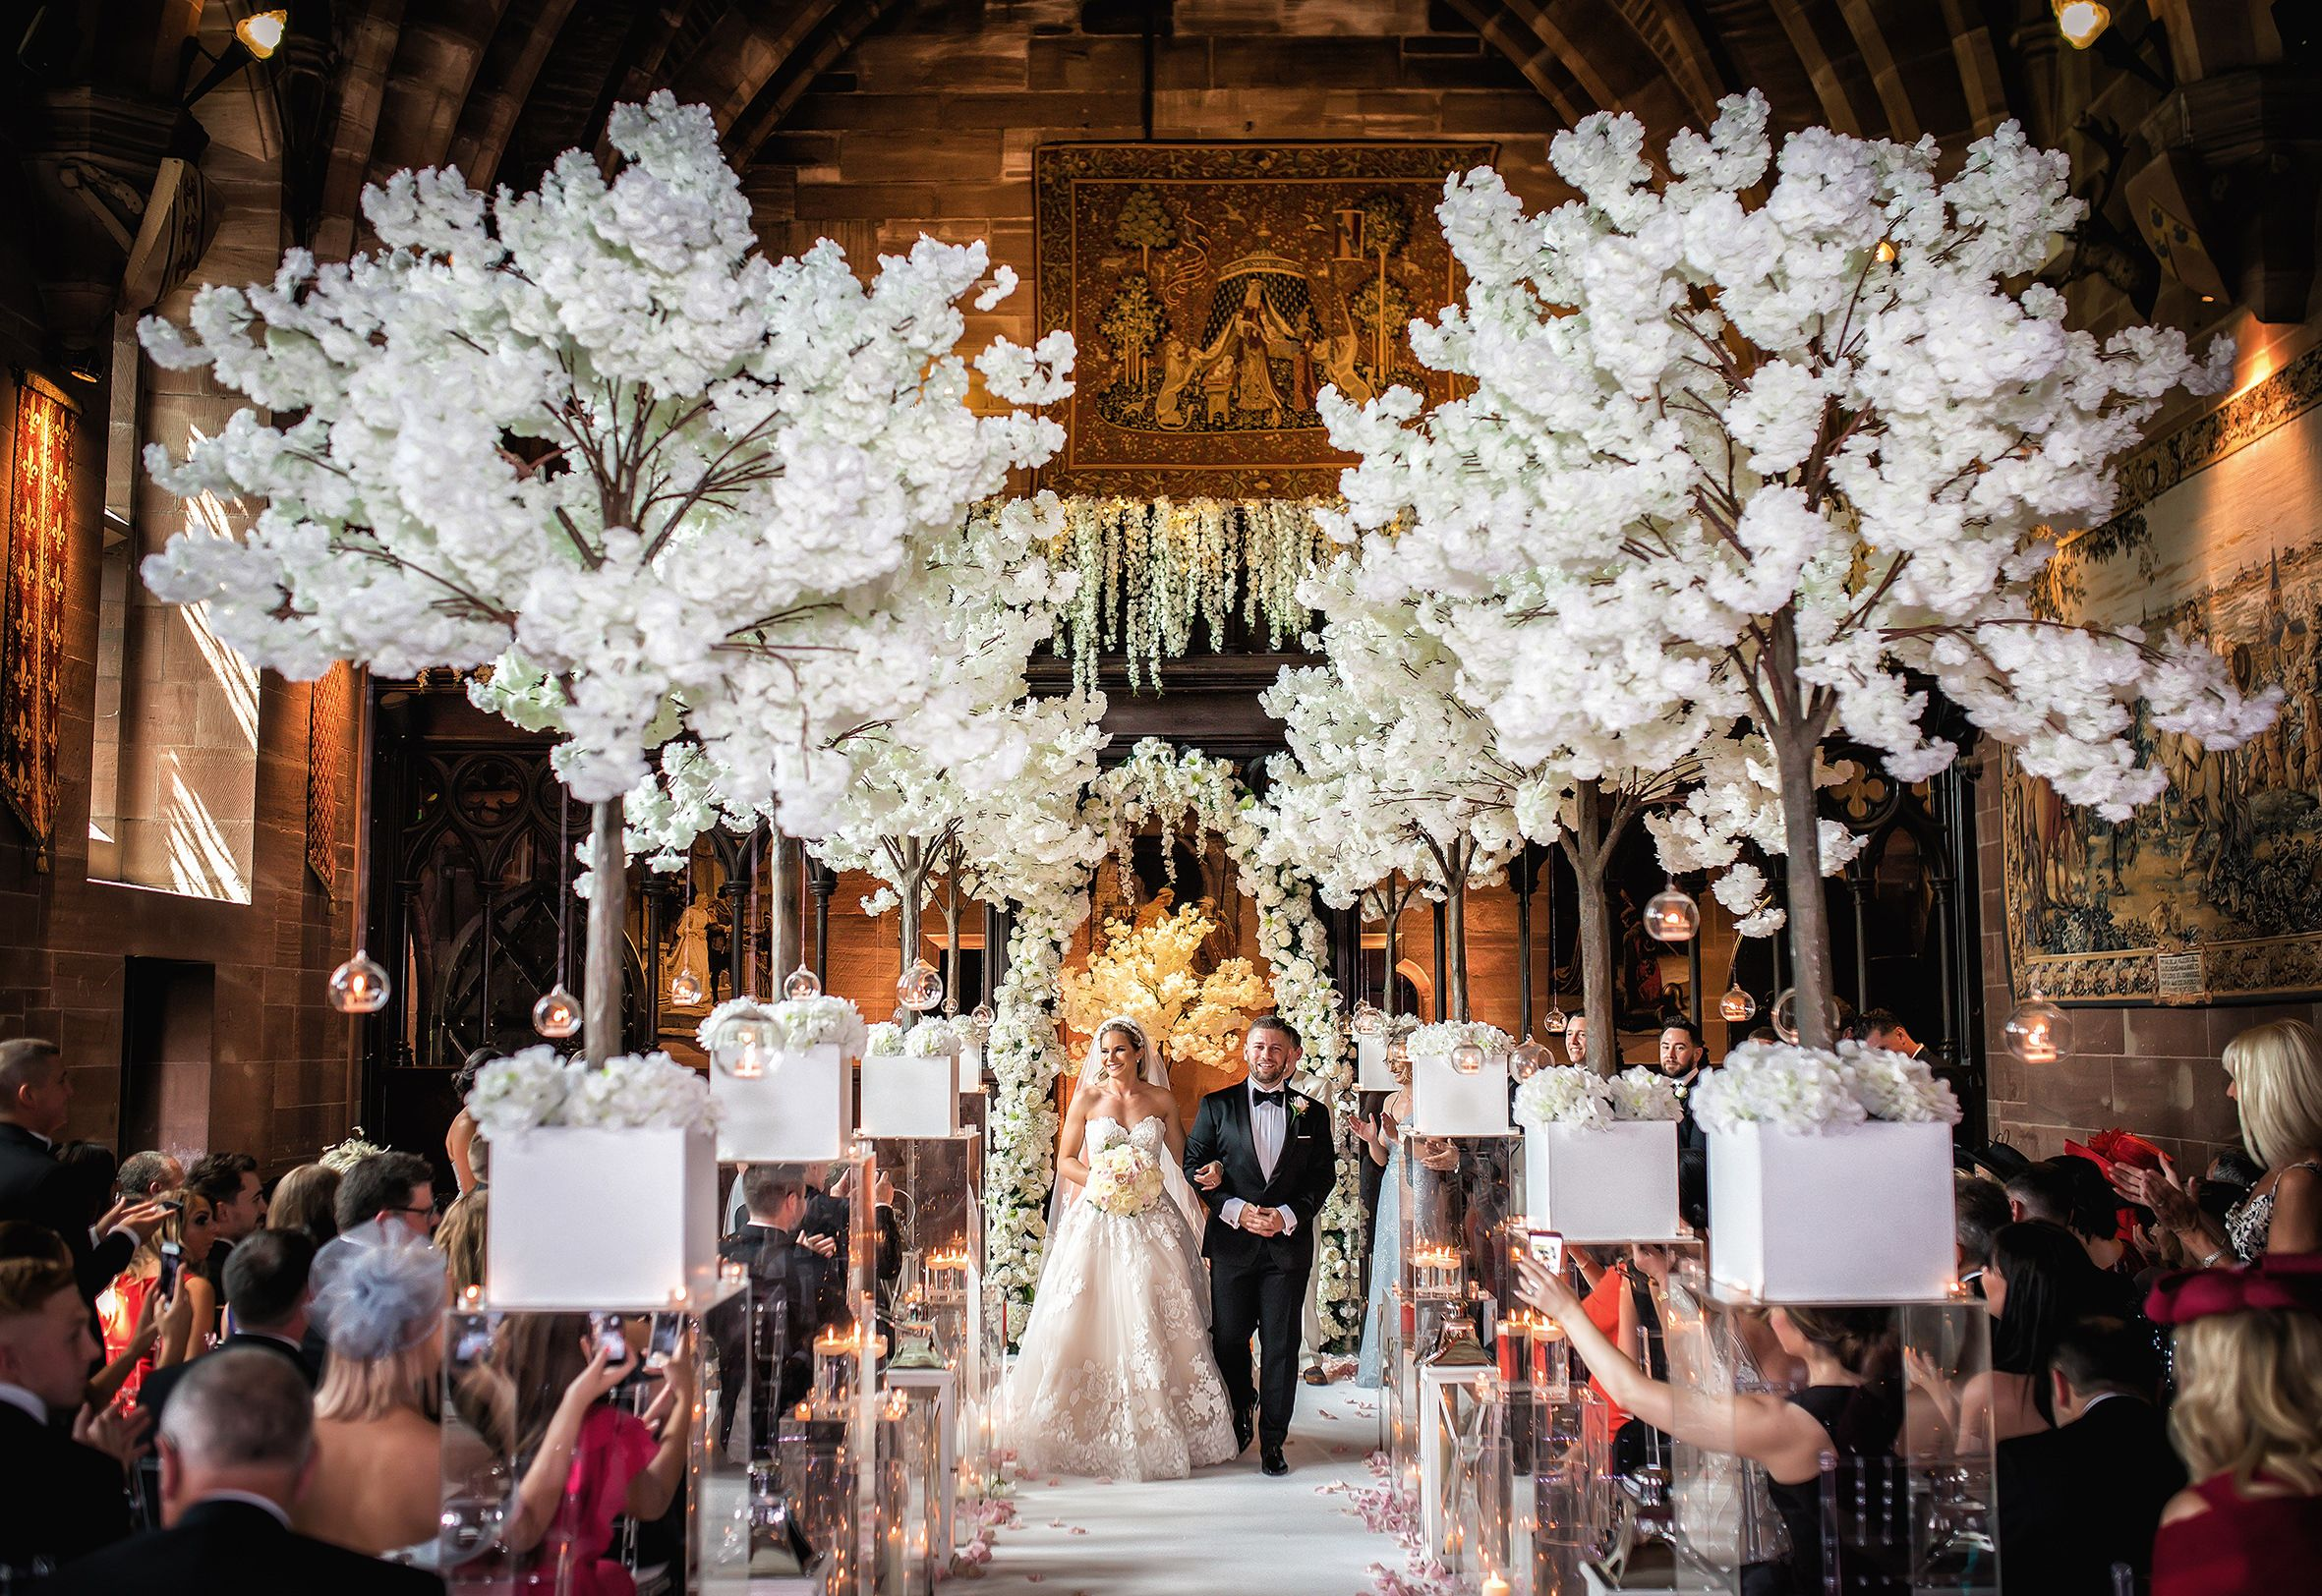 Newly wedded couple in the great hall at Peckforton Castle walk up the aisle surrounded by guests and white blossom tree